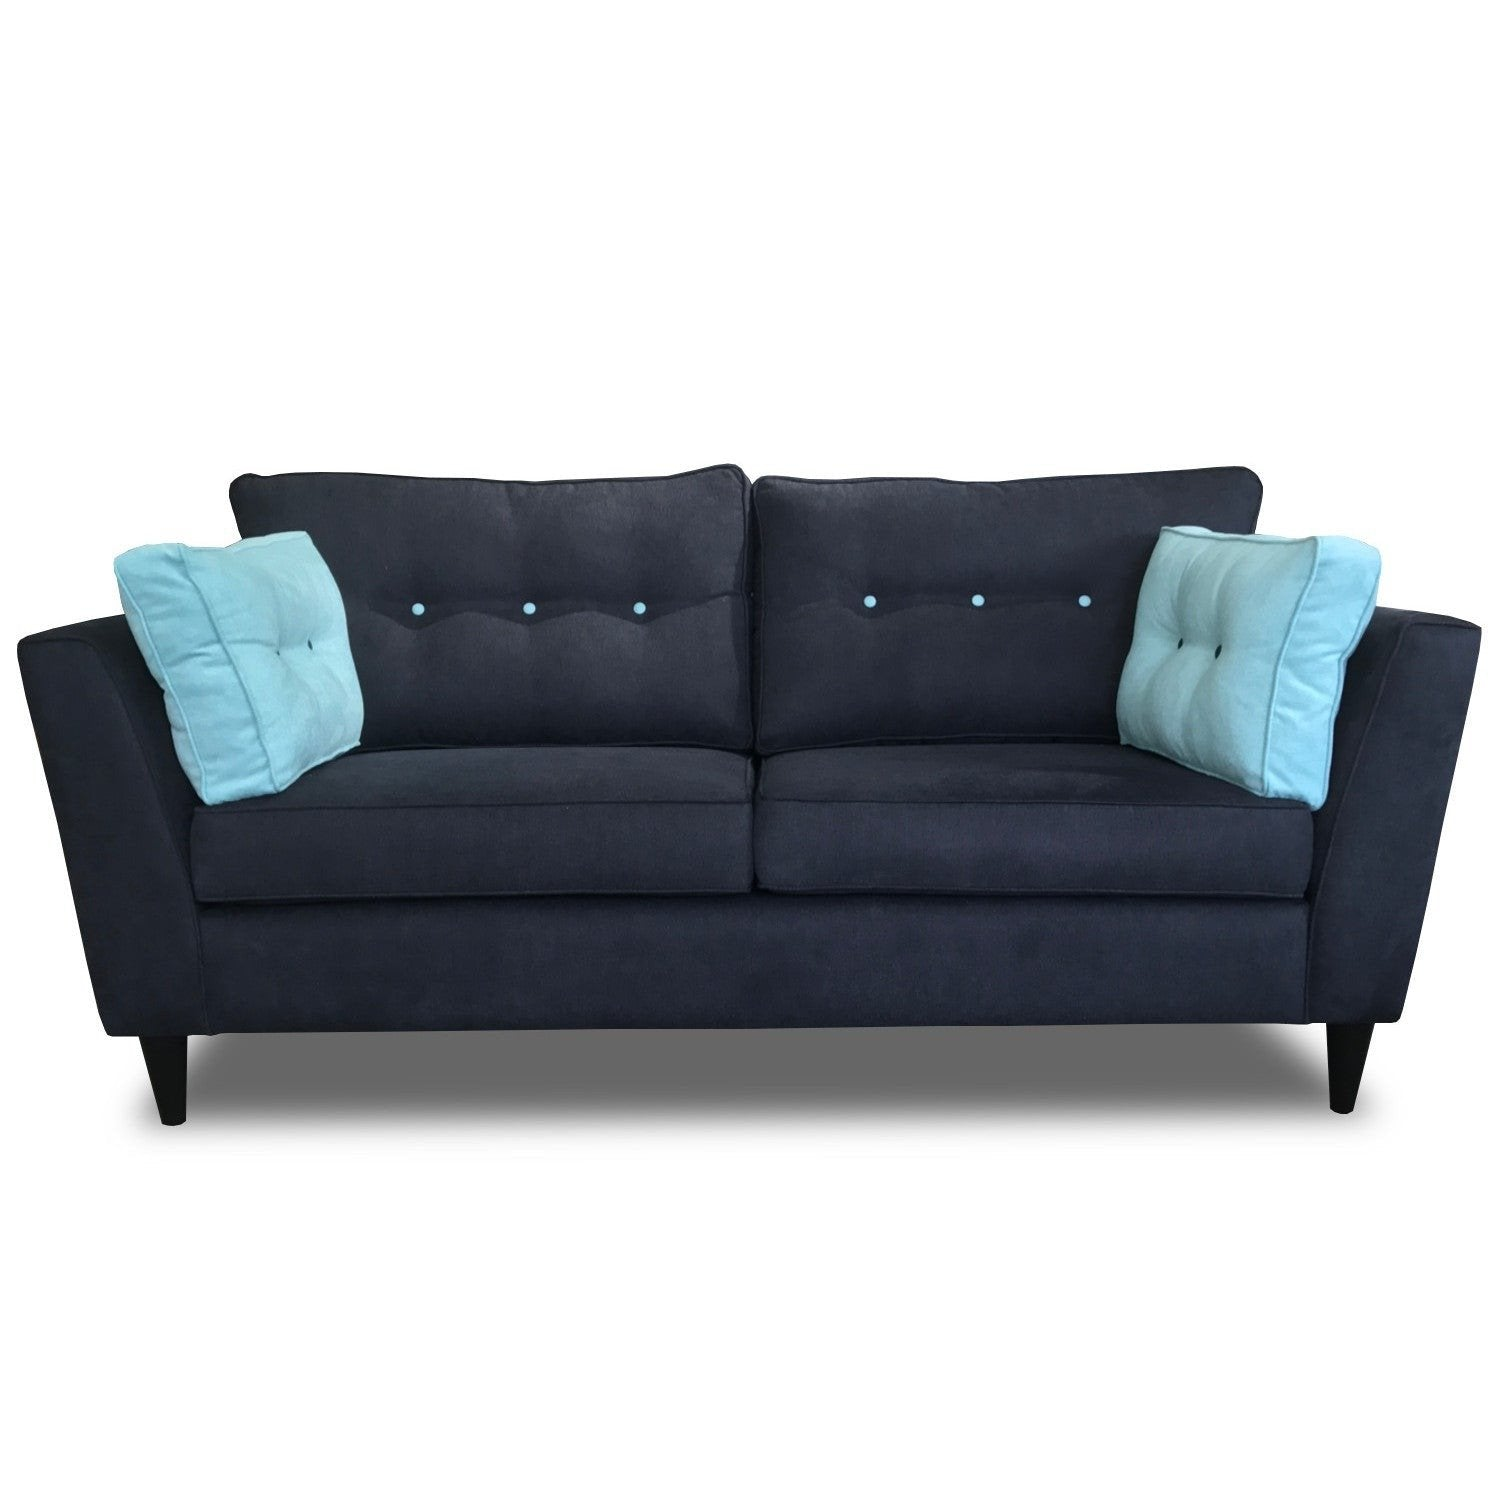 Memphis 2 Seater Sofa - The Furniture Store & The Bed Shop